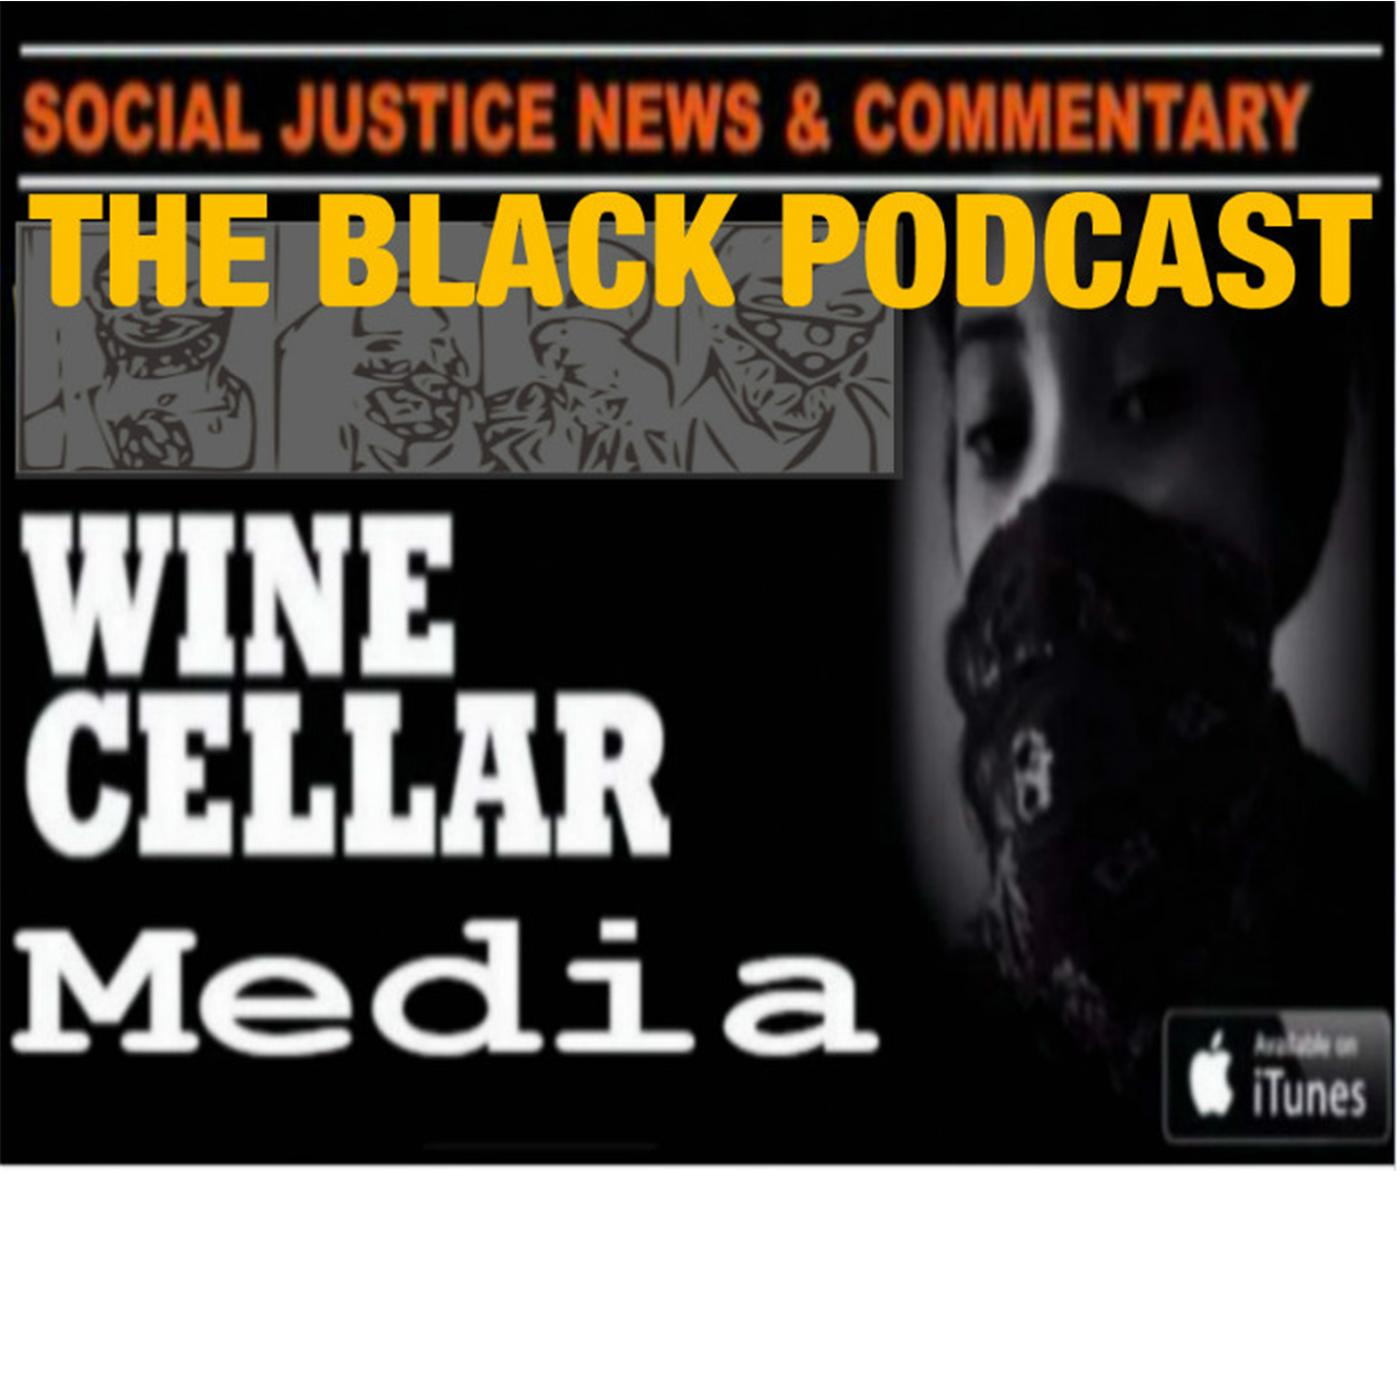 The Black Podcast With Wine Cellar Media